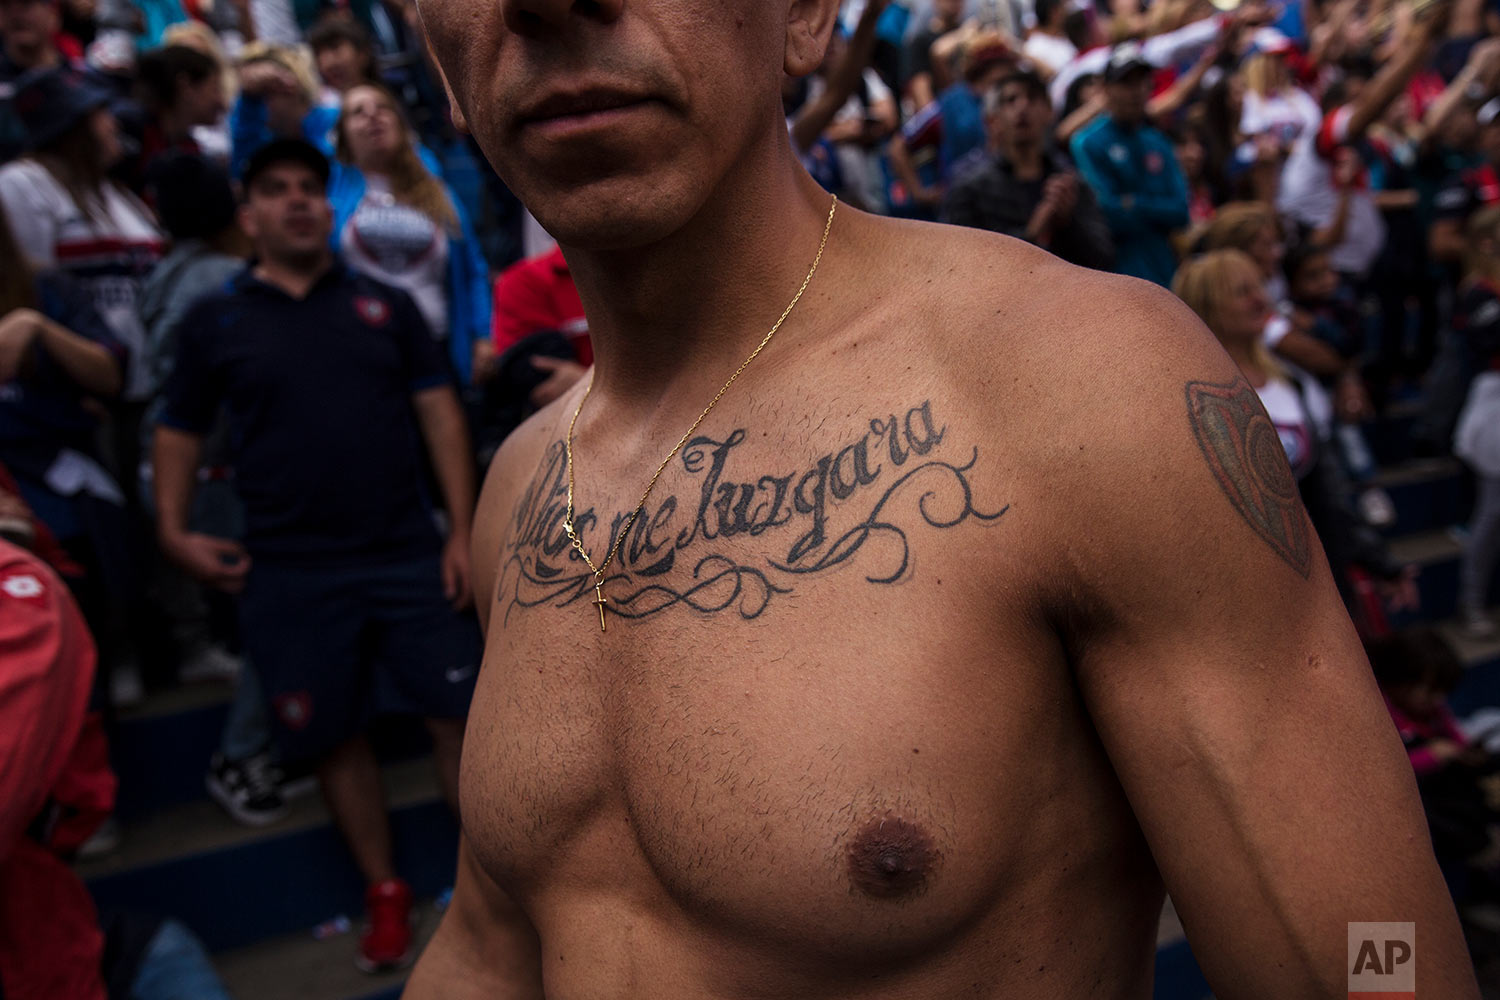 """In this April 8, 2018 photo, a San Lorenzo soccer team fan sporting a tattoo with the Spanish message: """"God will judge me"""" poses for the portrait inside the grandstand during a match against Godoy Cruz in Buenos Aires, Argentina. (AP Photo/Rodrigo Abd)"""